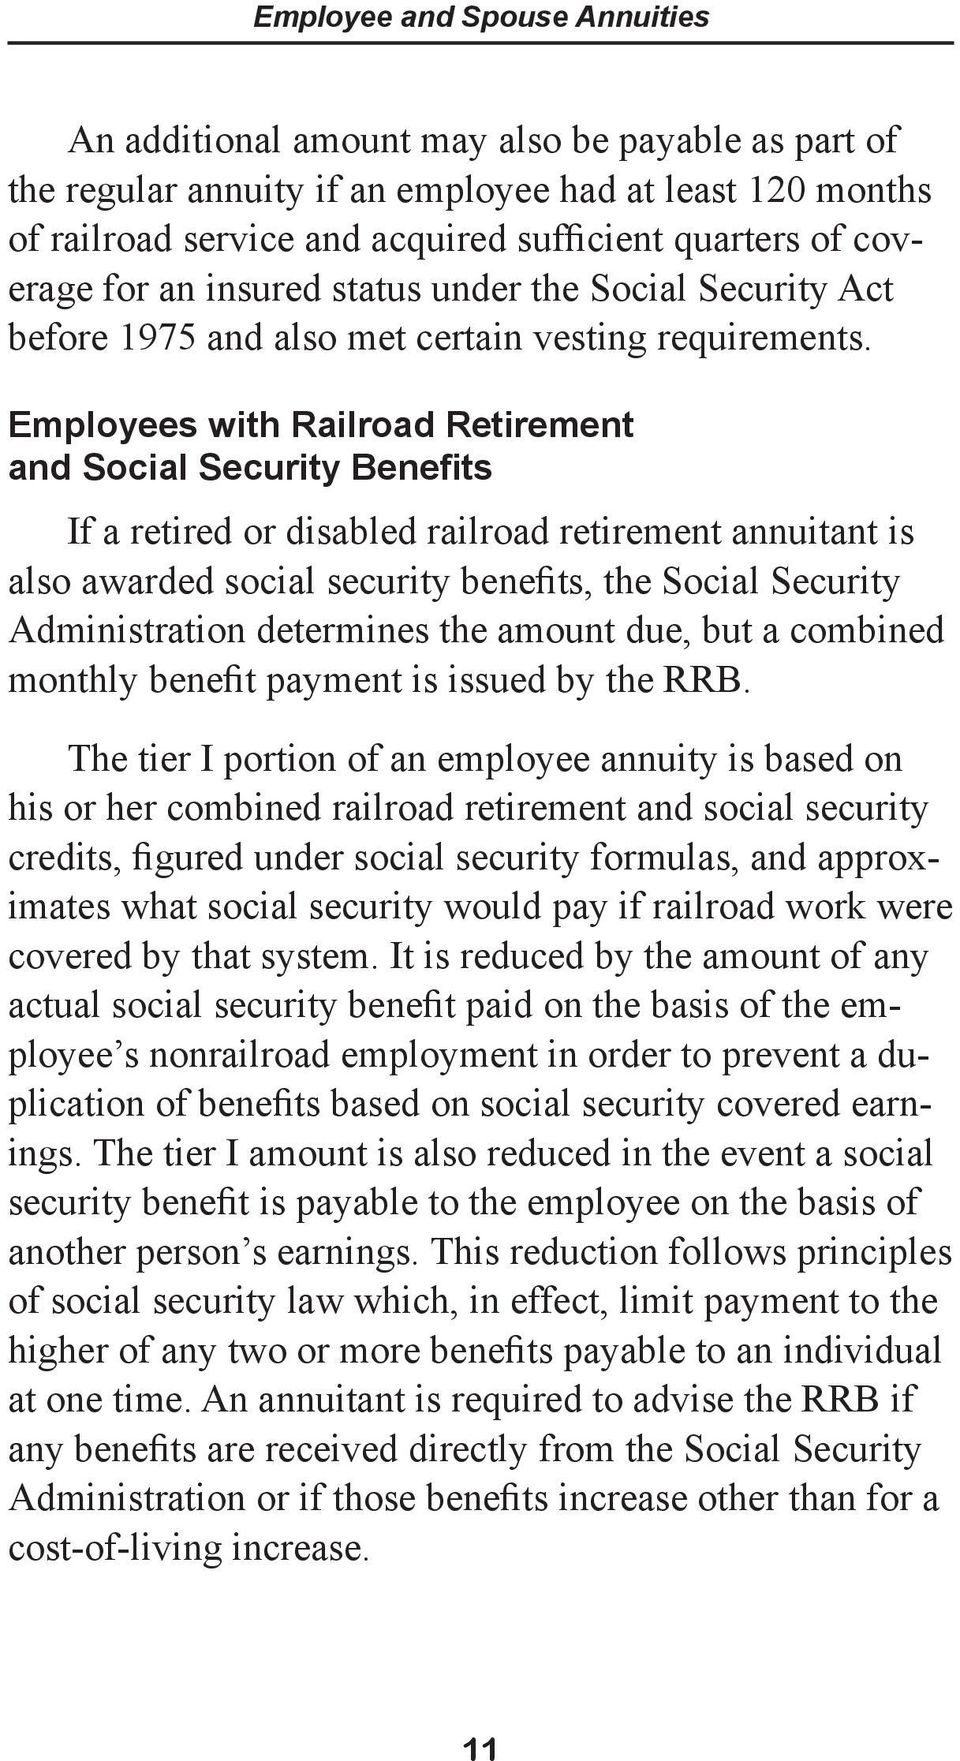 Employees with Railroad Retirement and Social Security Benefits If a retired or disabled railroad retirement annuitant is also awarded social security benefits, the Social Security Administration